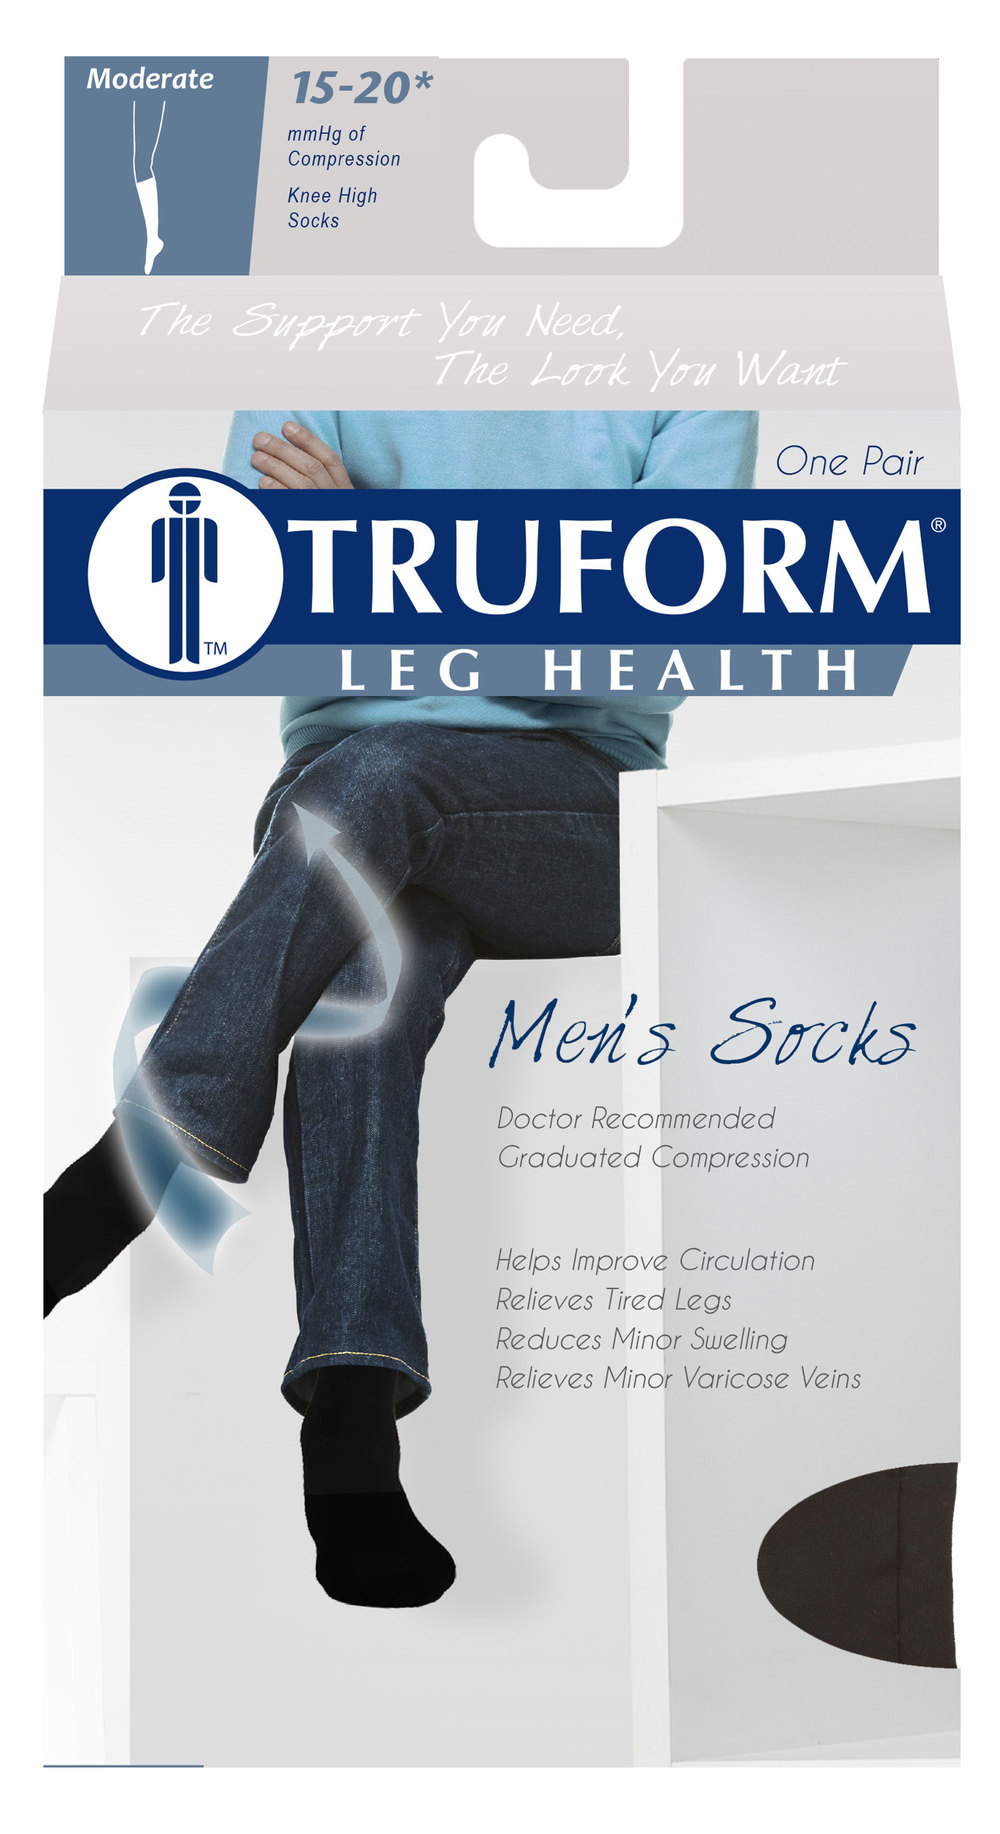 1933 / CUSHION-FOOT SUPPORT SOCK, KNEE HIGH / 15-20 MMHG PACKAGING IMAGE